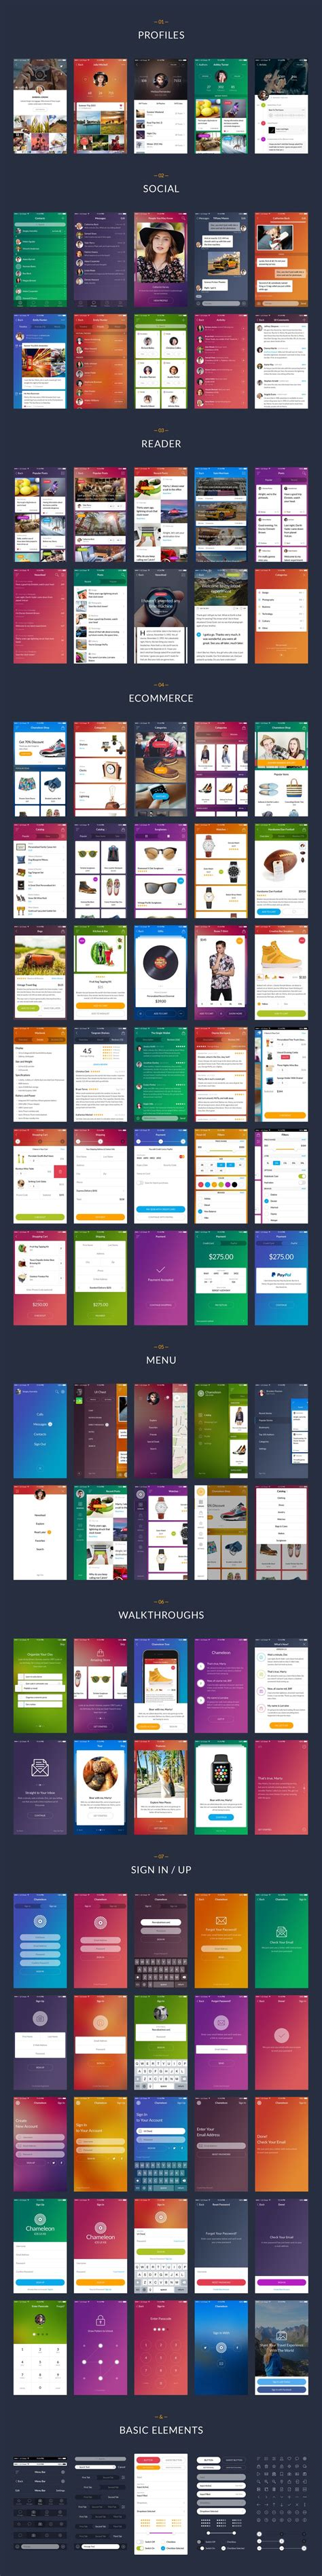 mobile ui themes chameleon is a modern mobile ui kit for sketch and